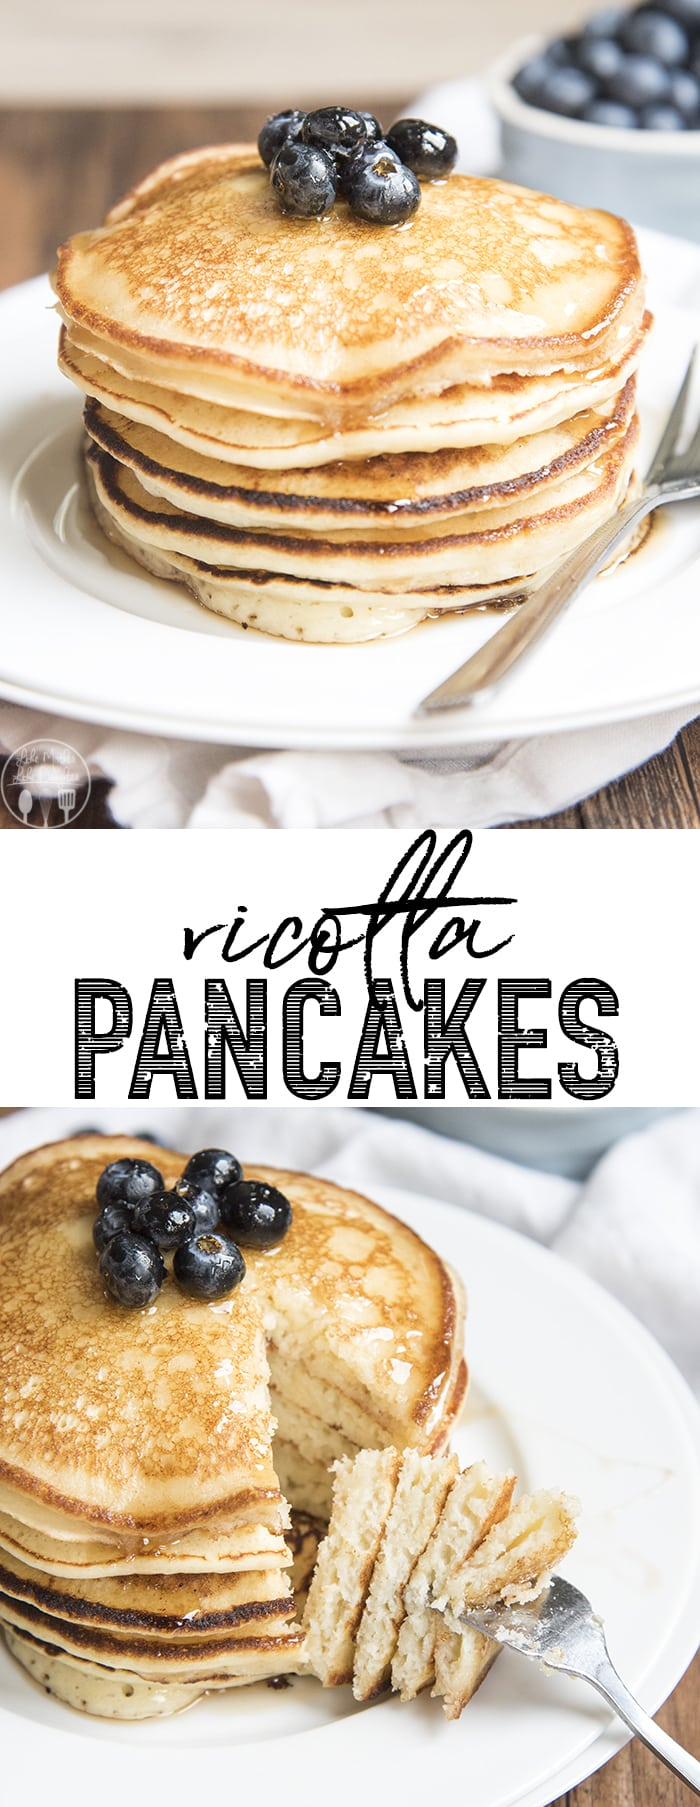 Ricotta pancakes are perfectly light, moist, and fluffy, and so smooth they melt in your mouth. Perfect for breakfast or brunch!